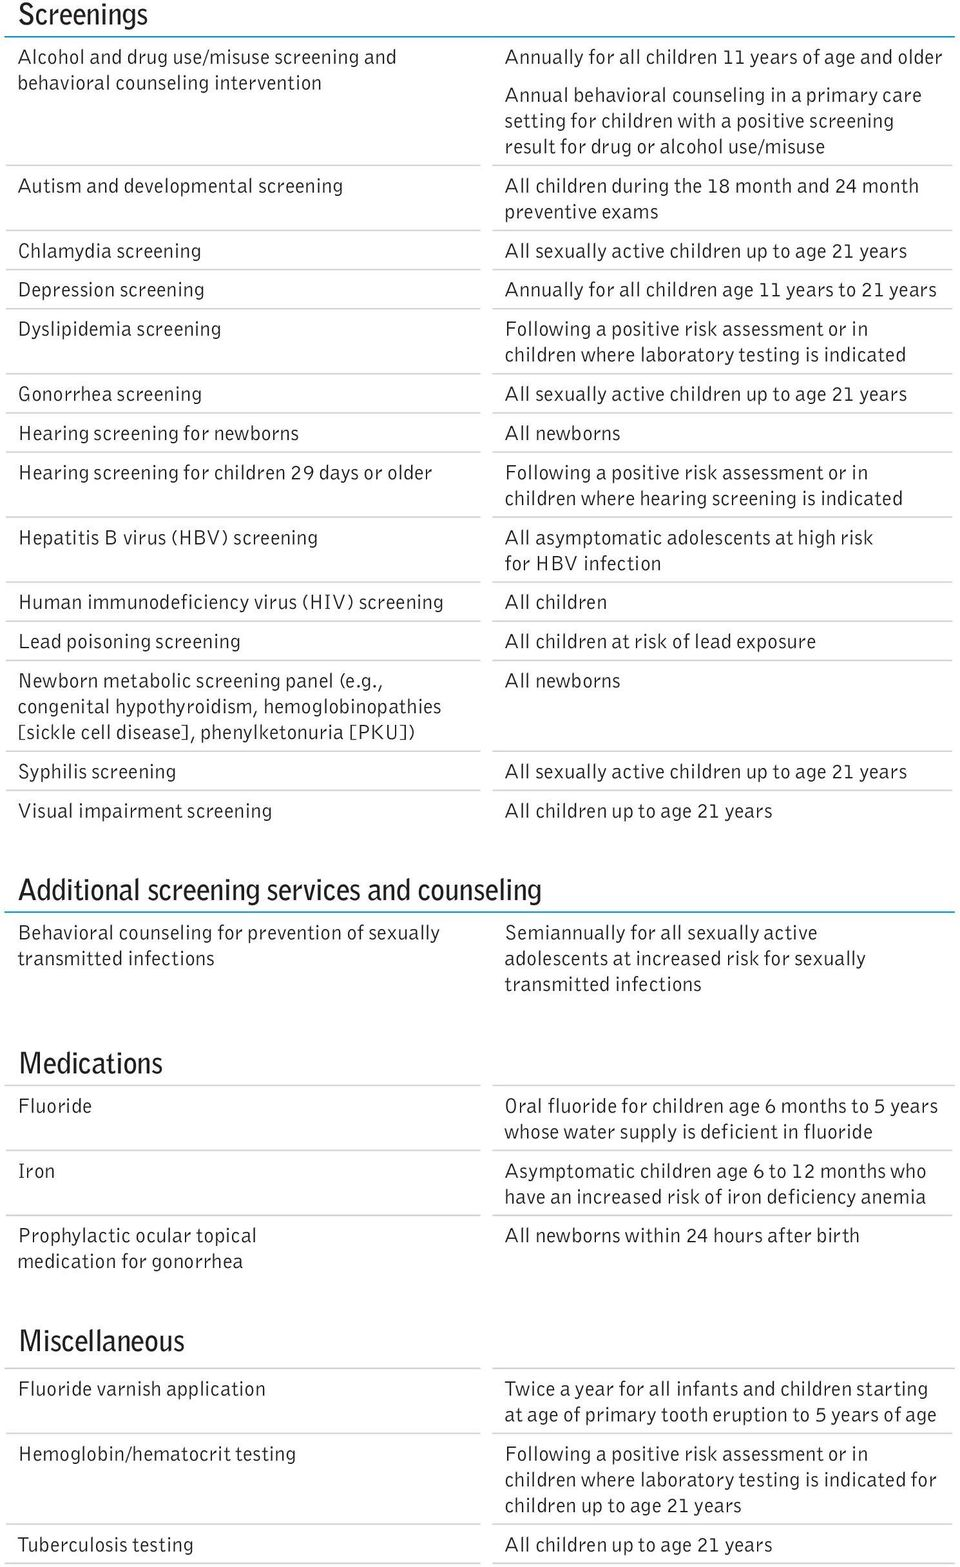 Newborn metabolic screening